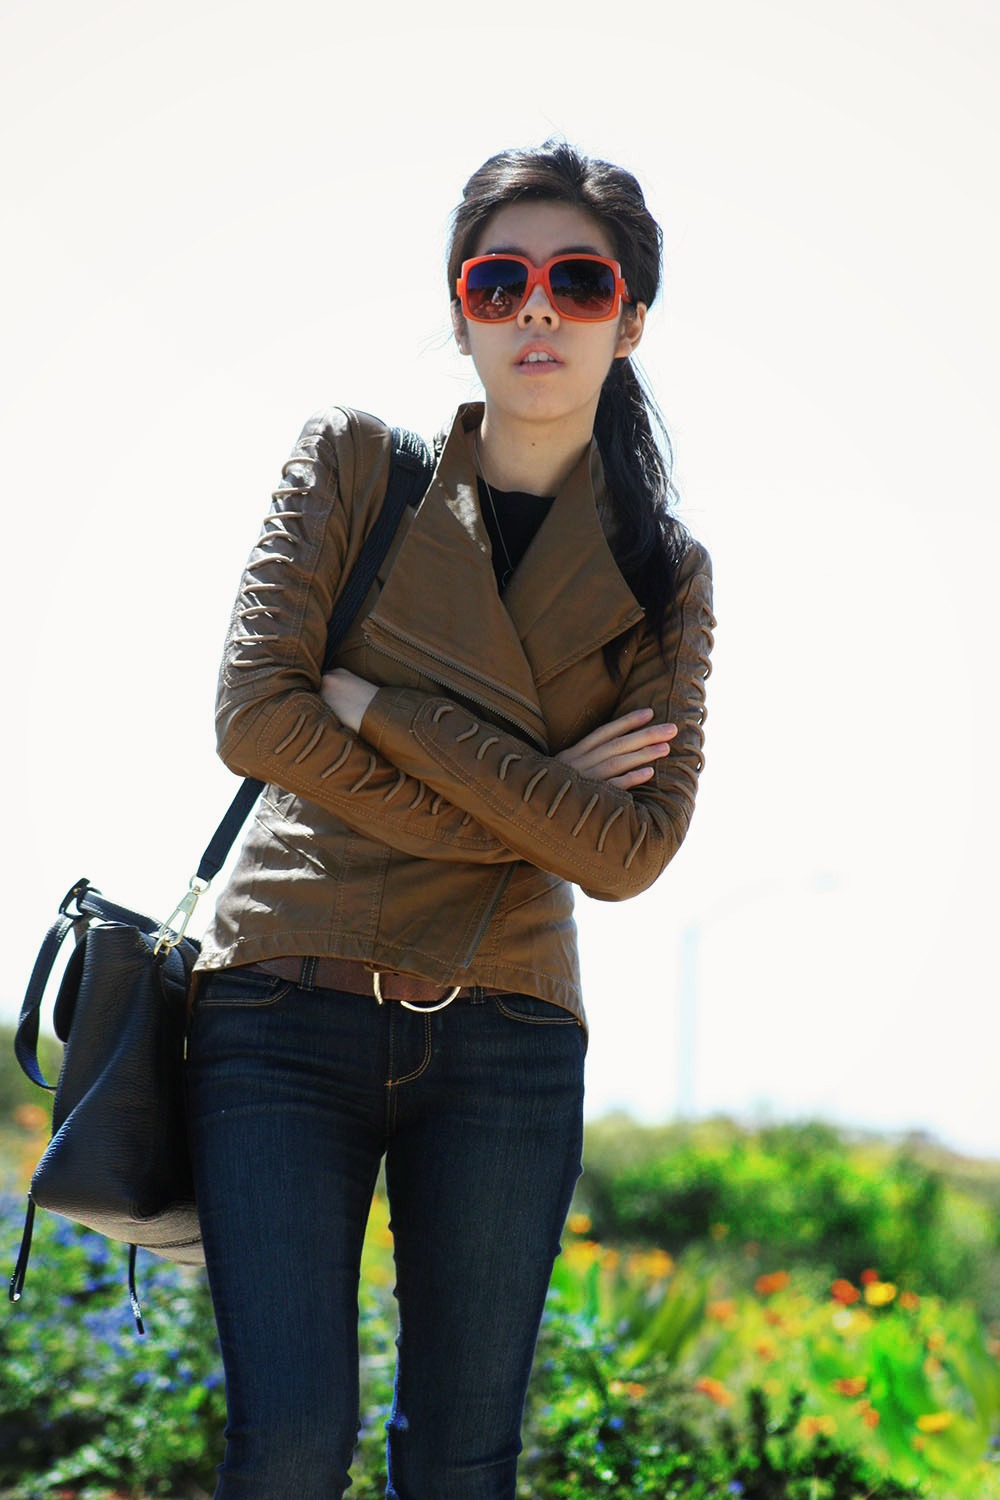 Adrienne Nguyen_Invictus_How to Wear Flare Jeans_Flare Jeans and Black T-Shirt Combination